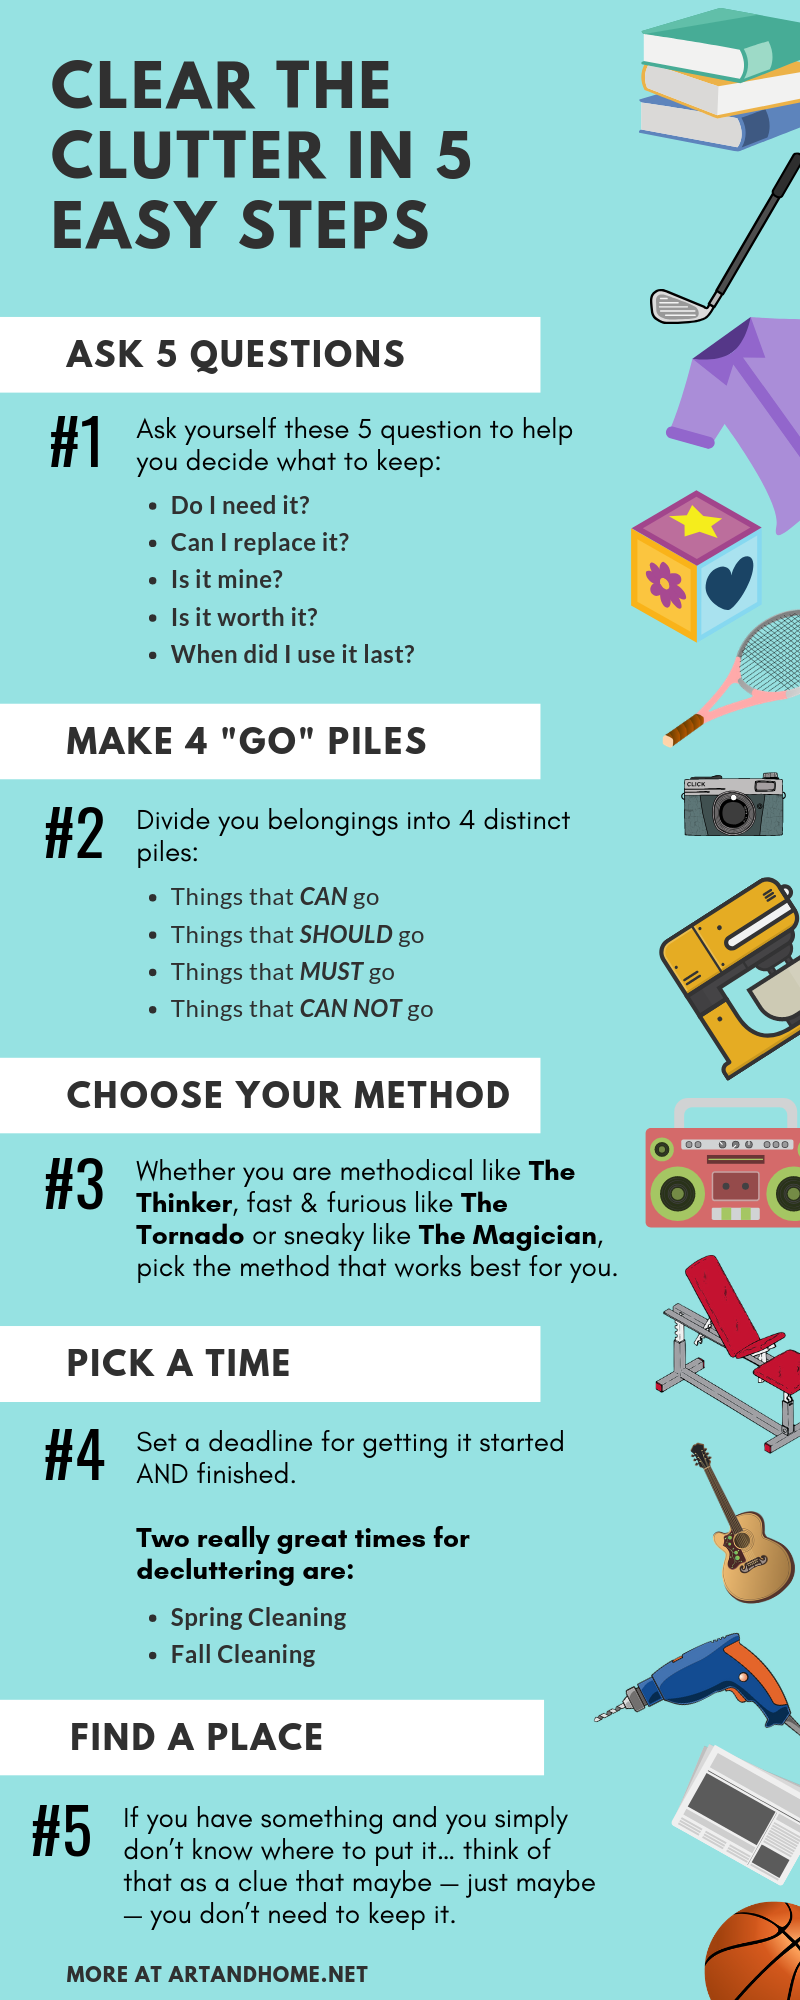 Clear the Clutter in 5 Easy Steps: A Home Decor Infographic